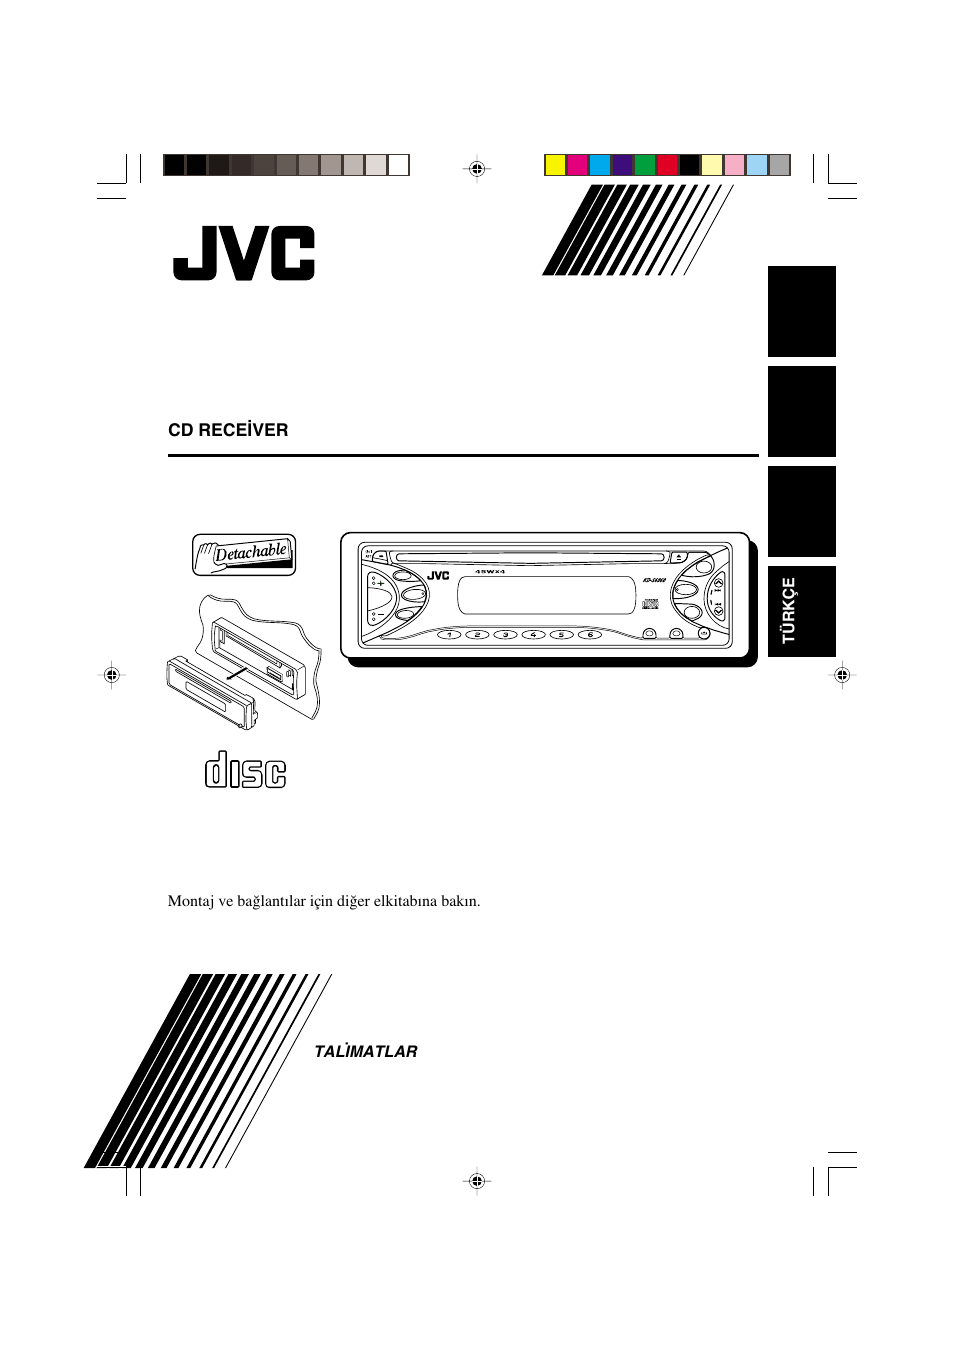 medium resolution of  jvc kd r330 wiring diagram wiring diagram connector diagram picture power and